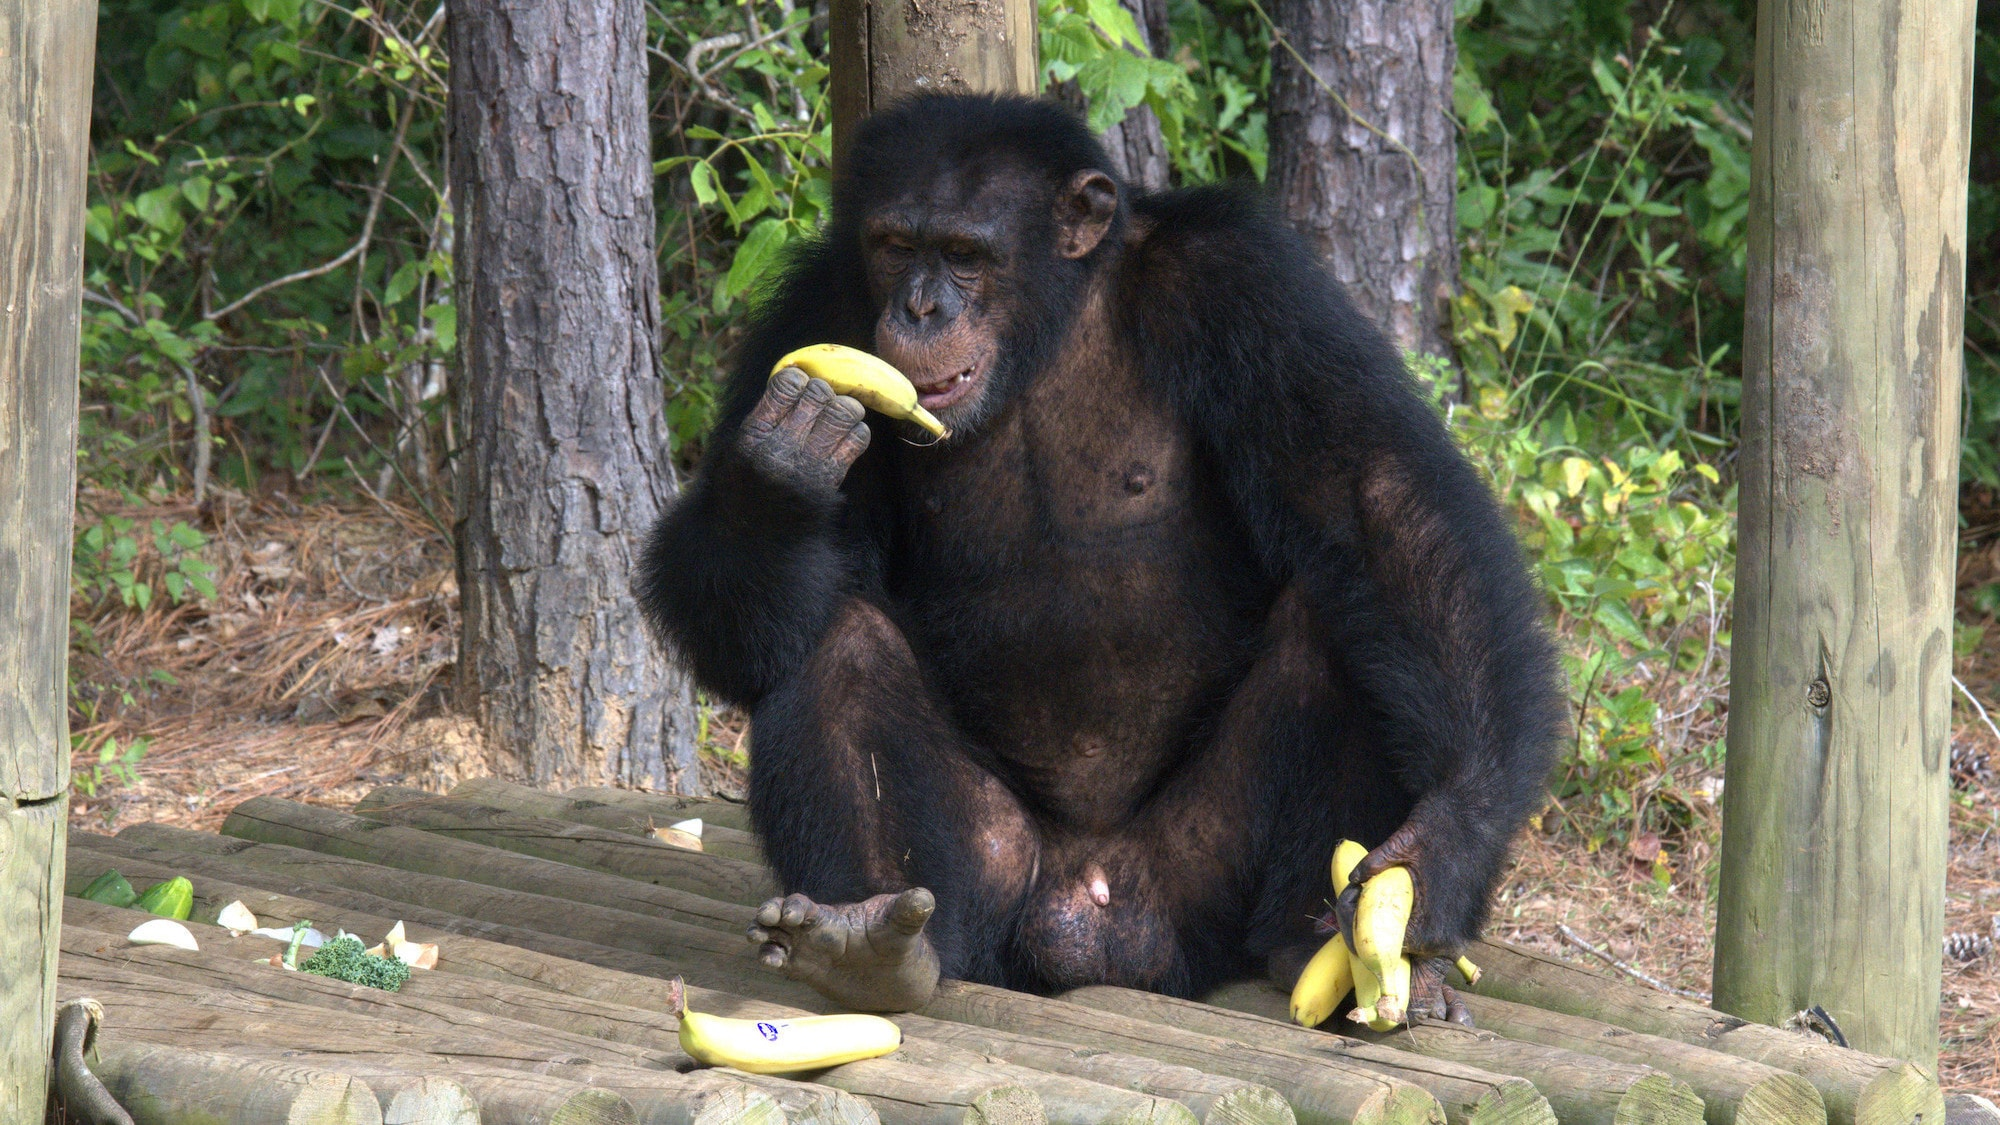 Jimmy Dean sat on a wooden platform eating a banana. Sara Soda's group. (National Geographic/Virginia Quinn)